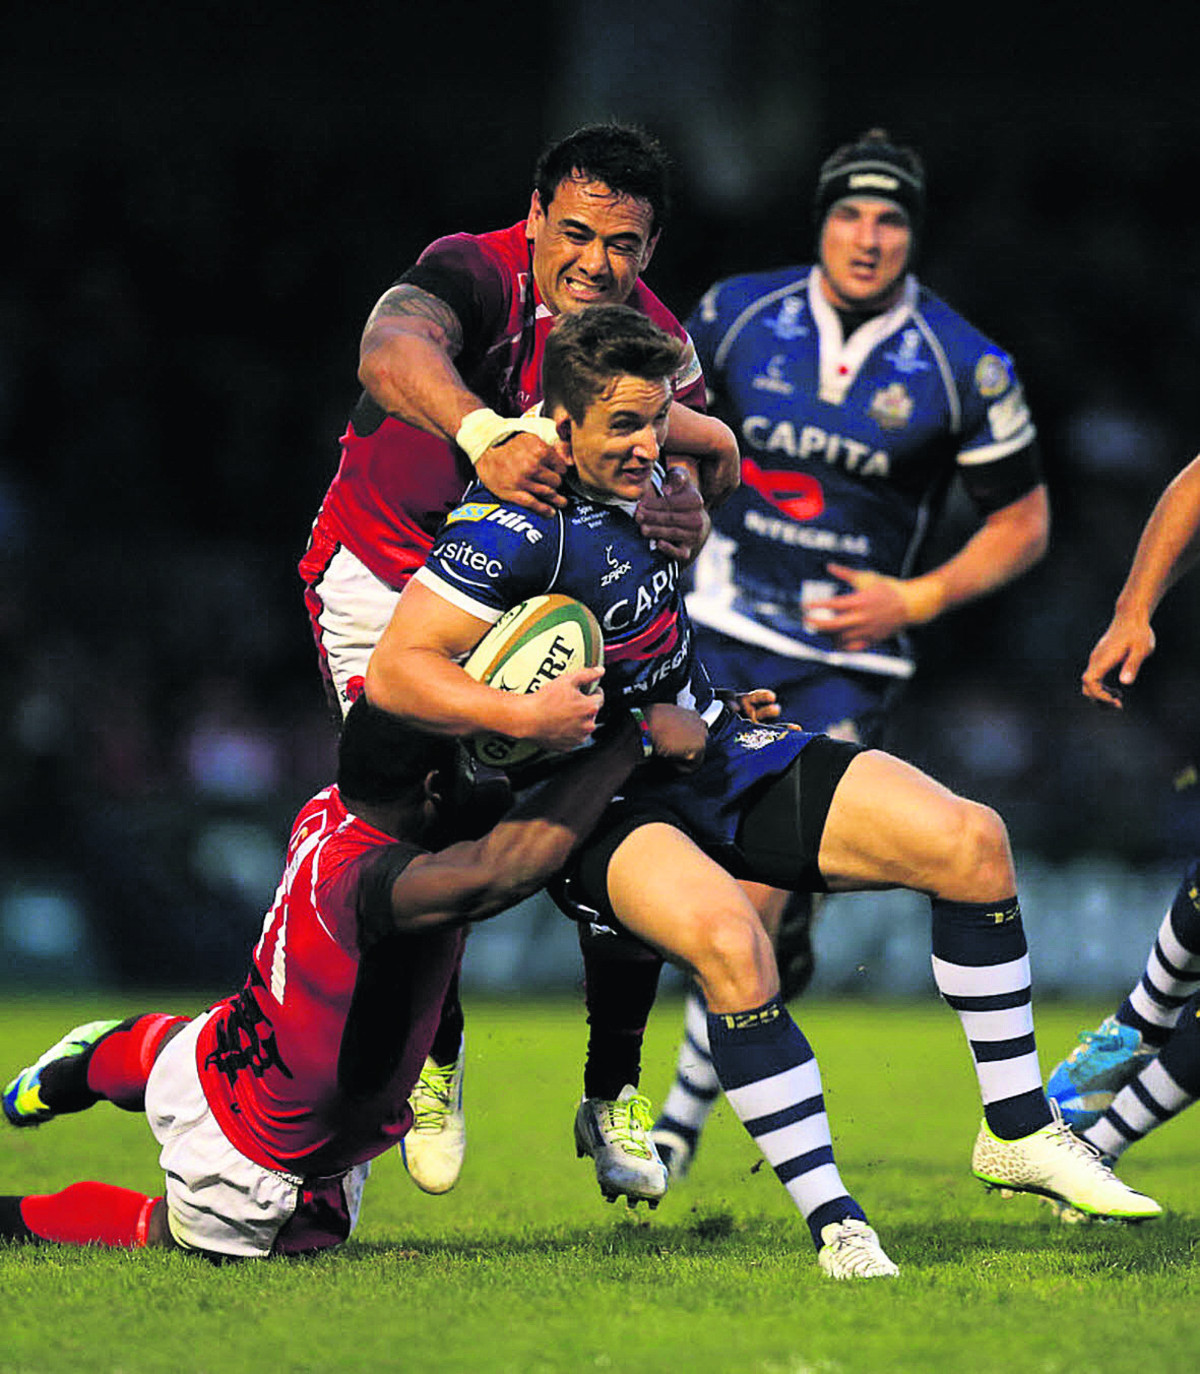 London Welsh's Daniel Browne and Joe Ajuwa get to grips with Bristol's George Watkins at the Memorial Ground last night